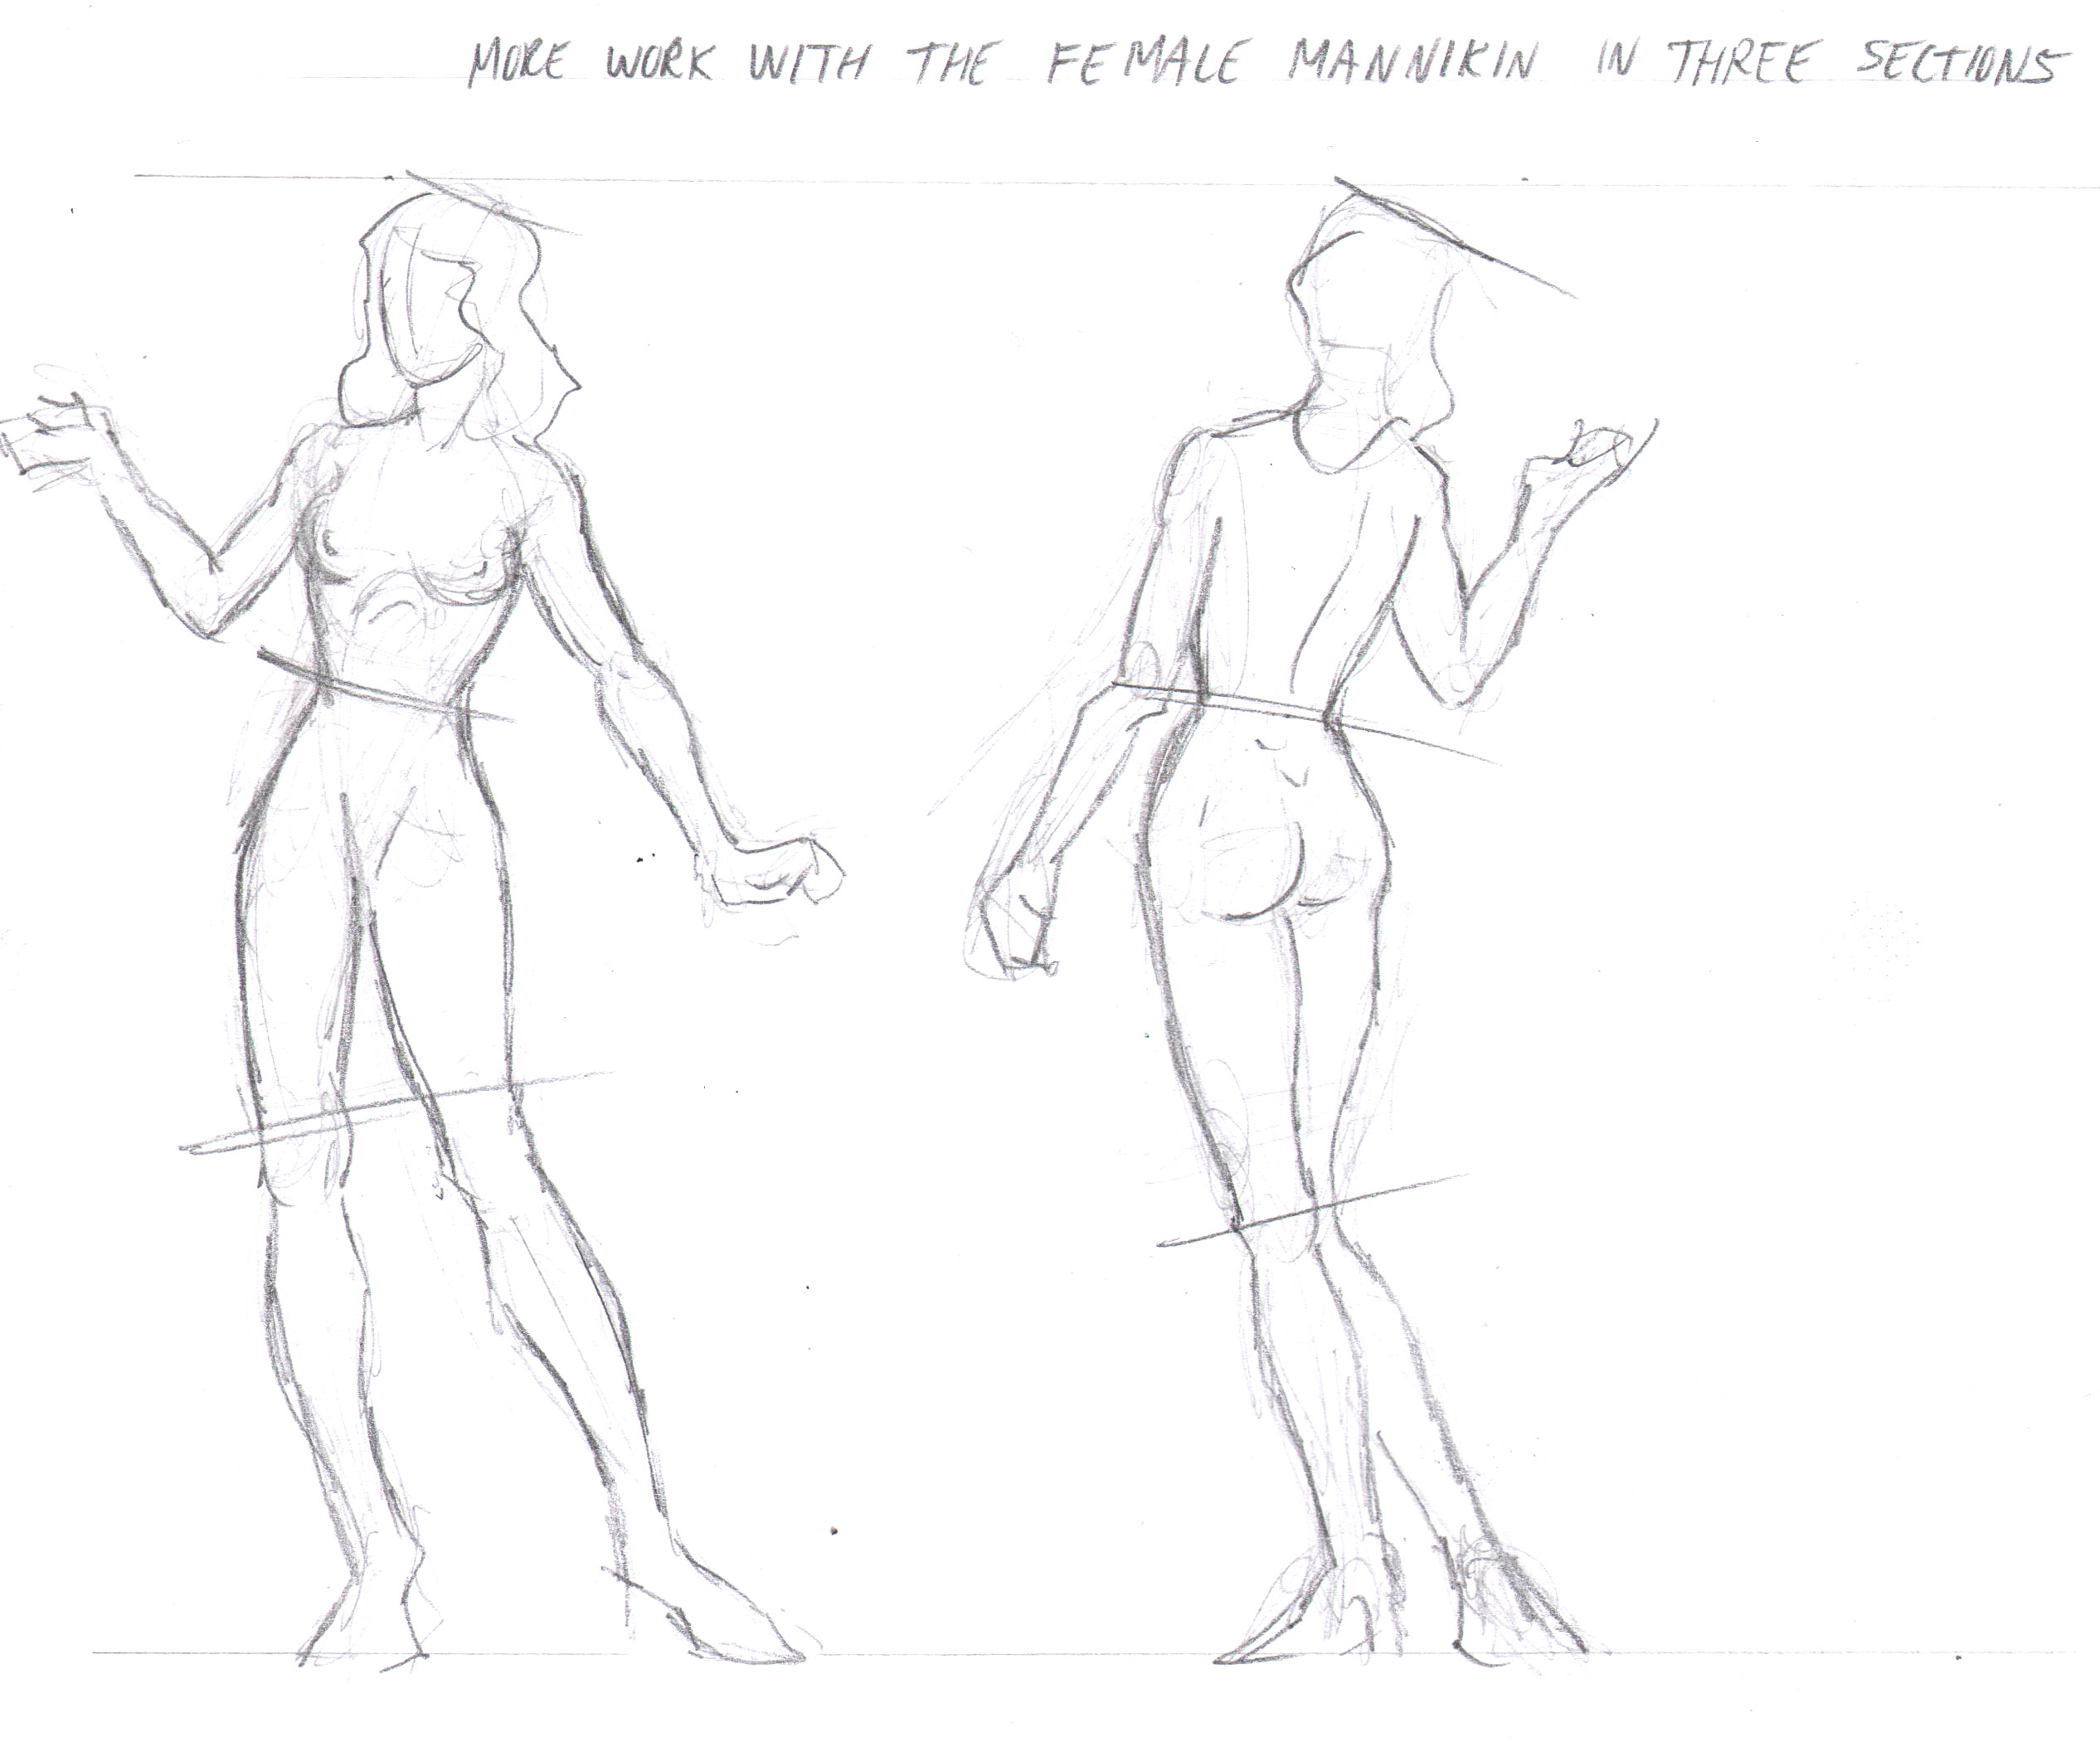 2532x2112 5 26 More Work With The Female Mannikin In Three Sections.jpg